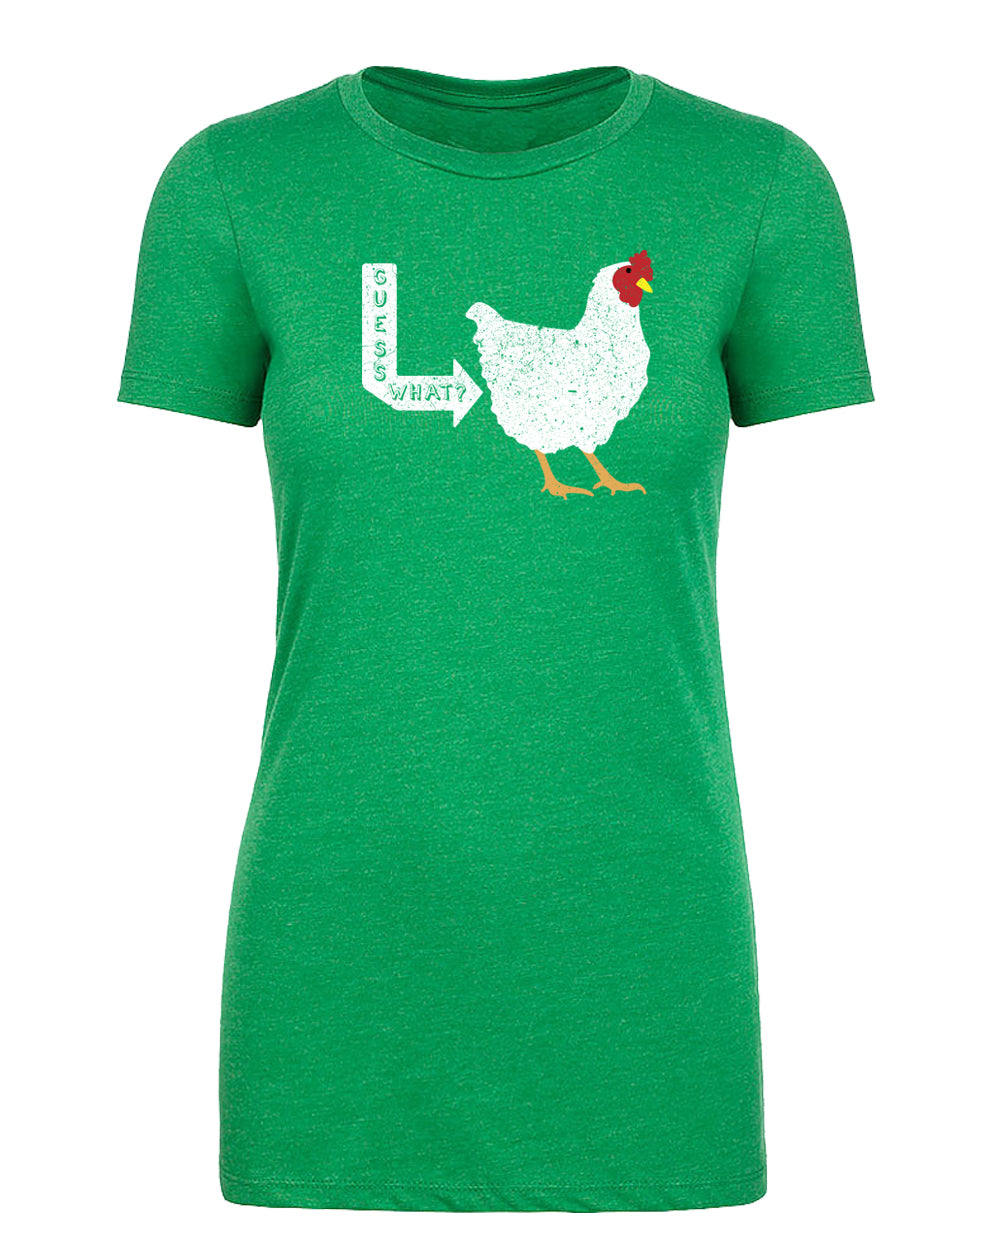 Shirt - Guess What, Chicken Butt Funny Ladies T-shirts, Sarcastic T-shirts For Women